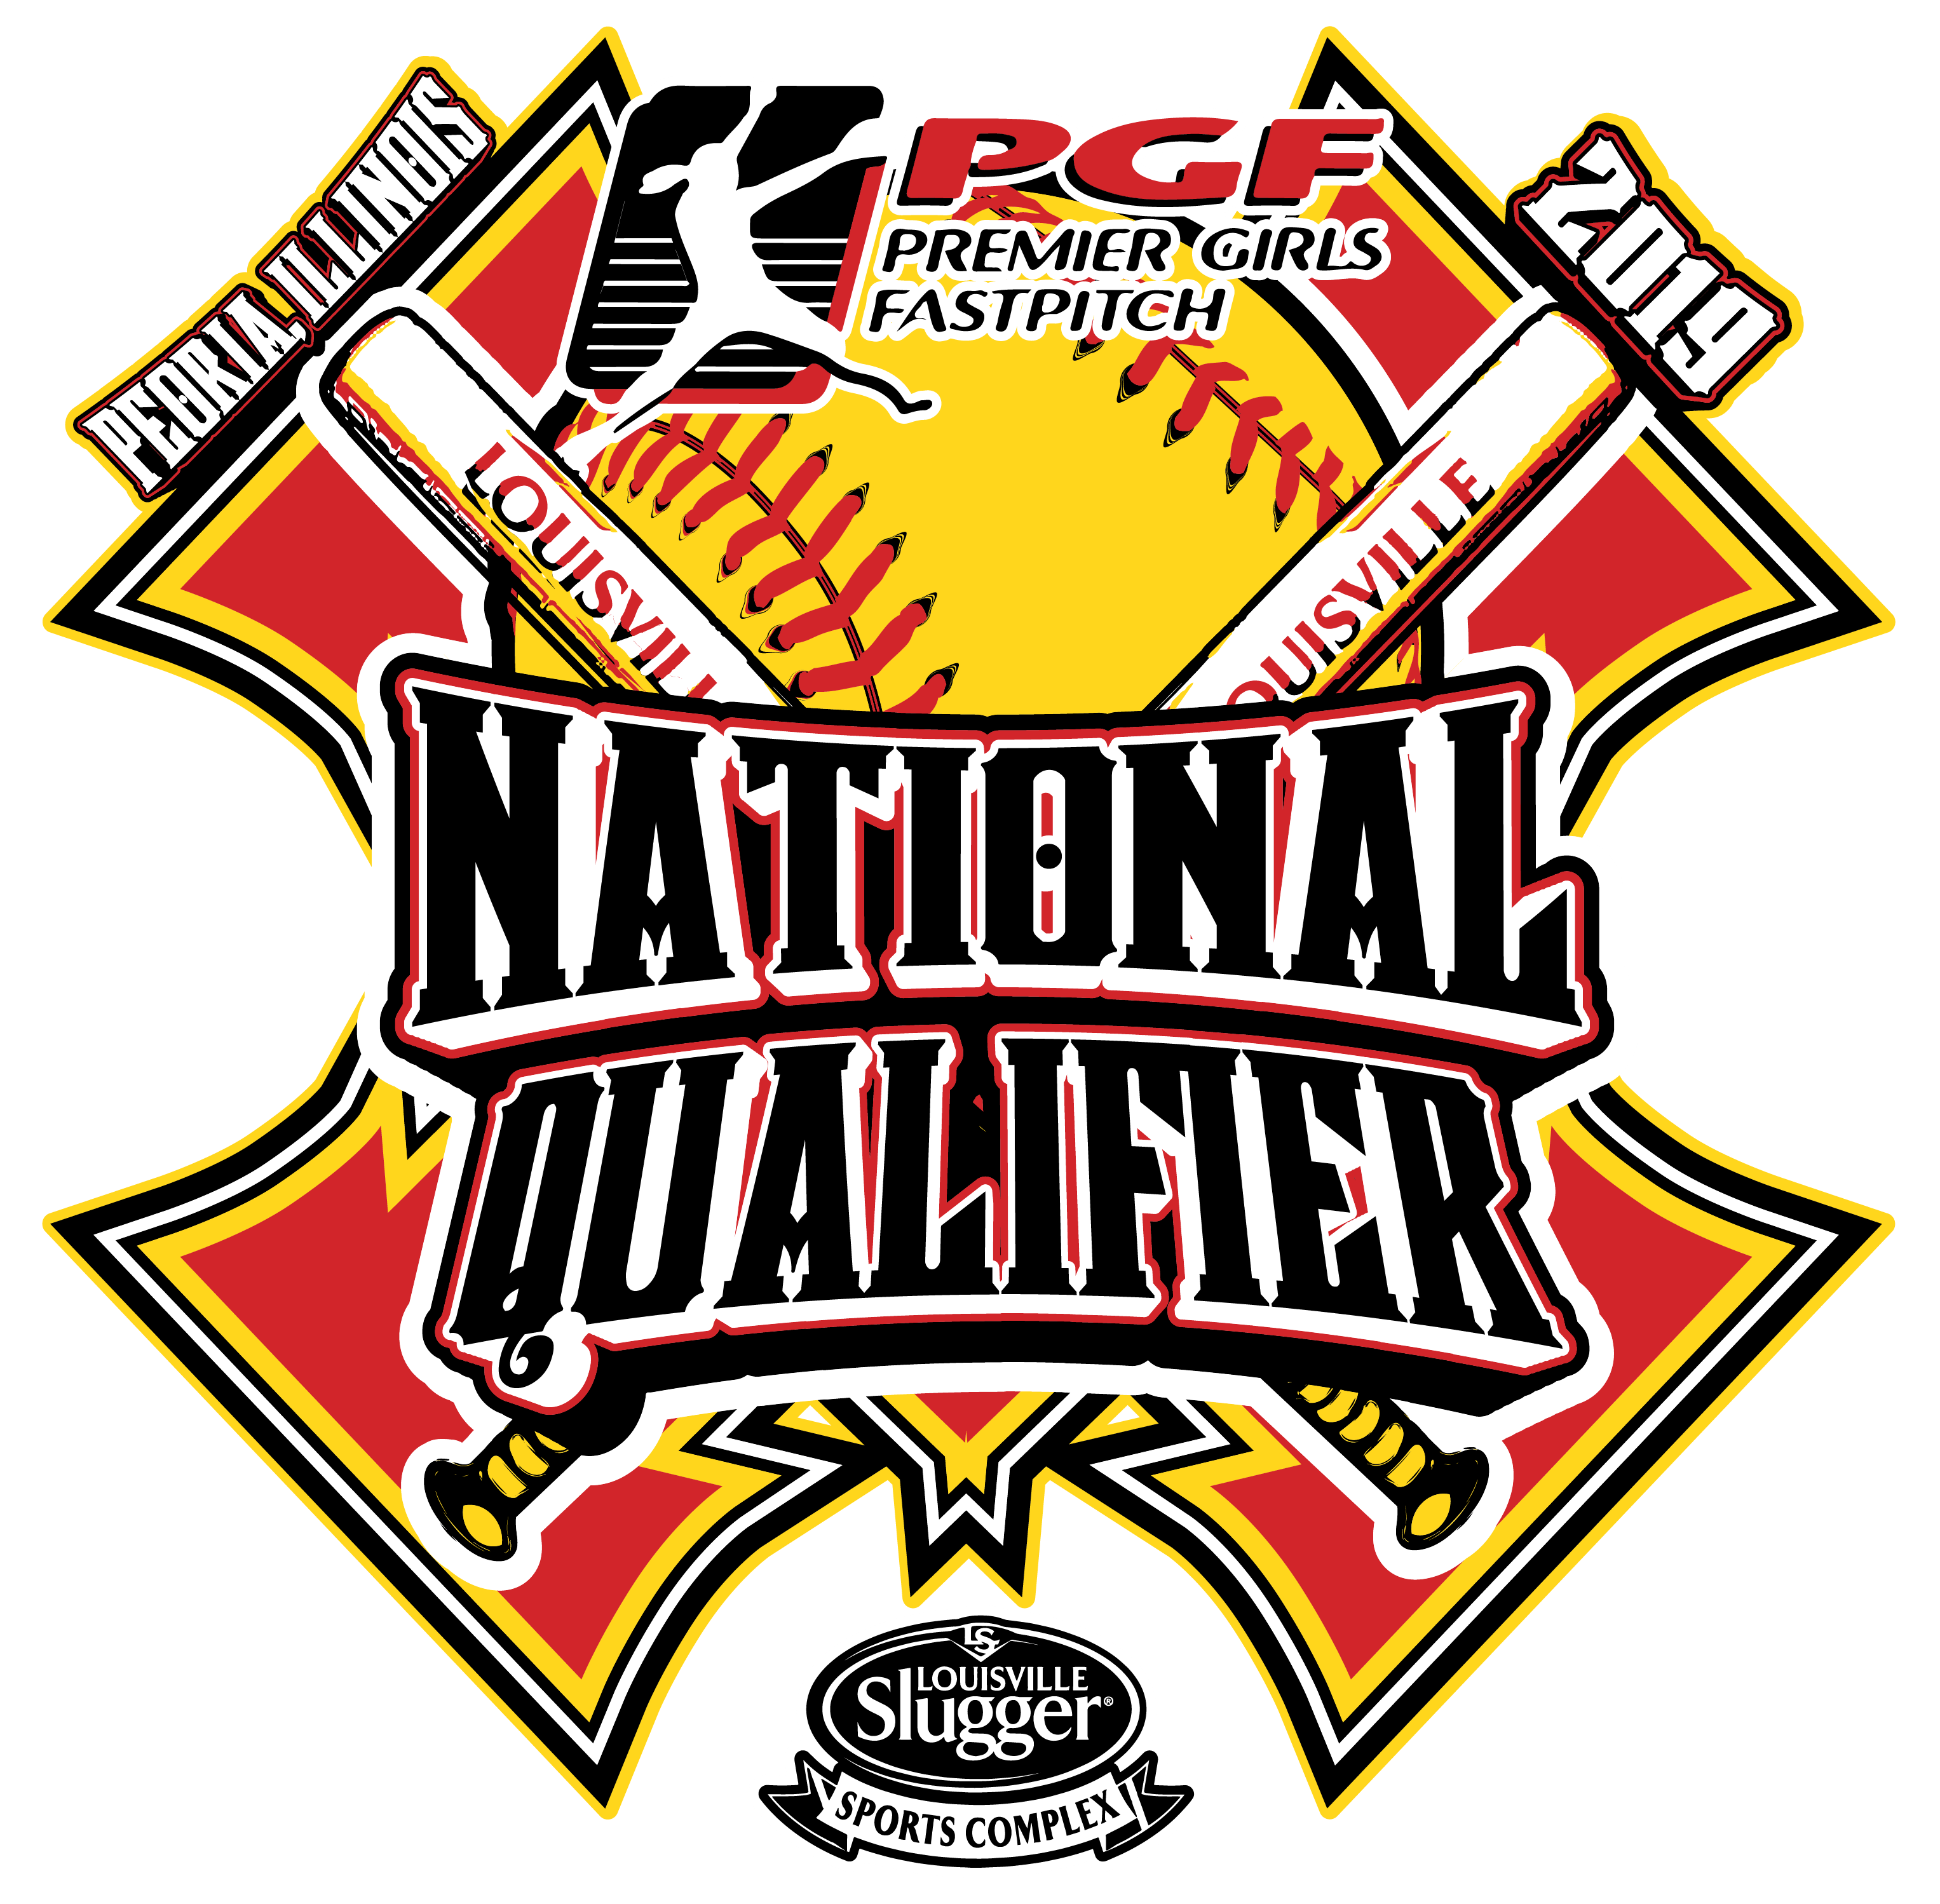 PGF National Qualifier